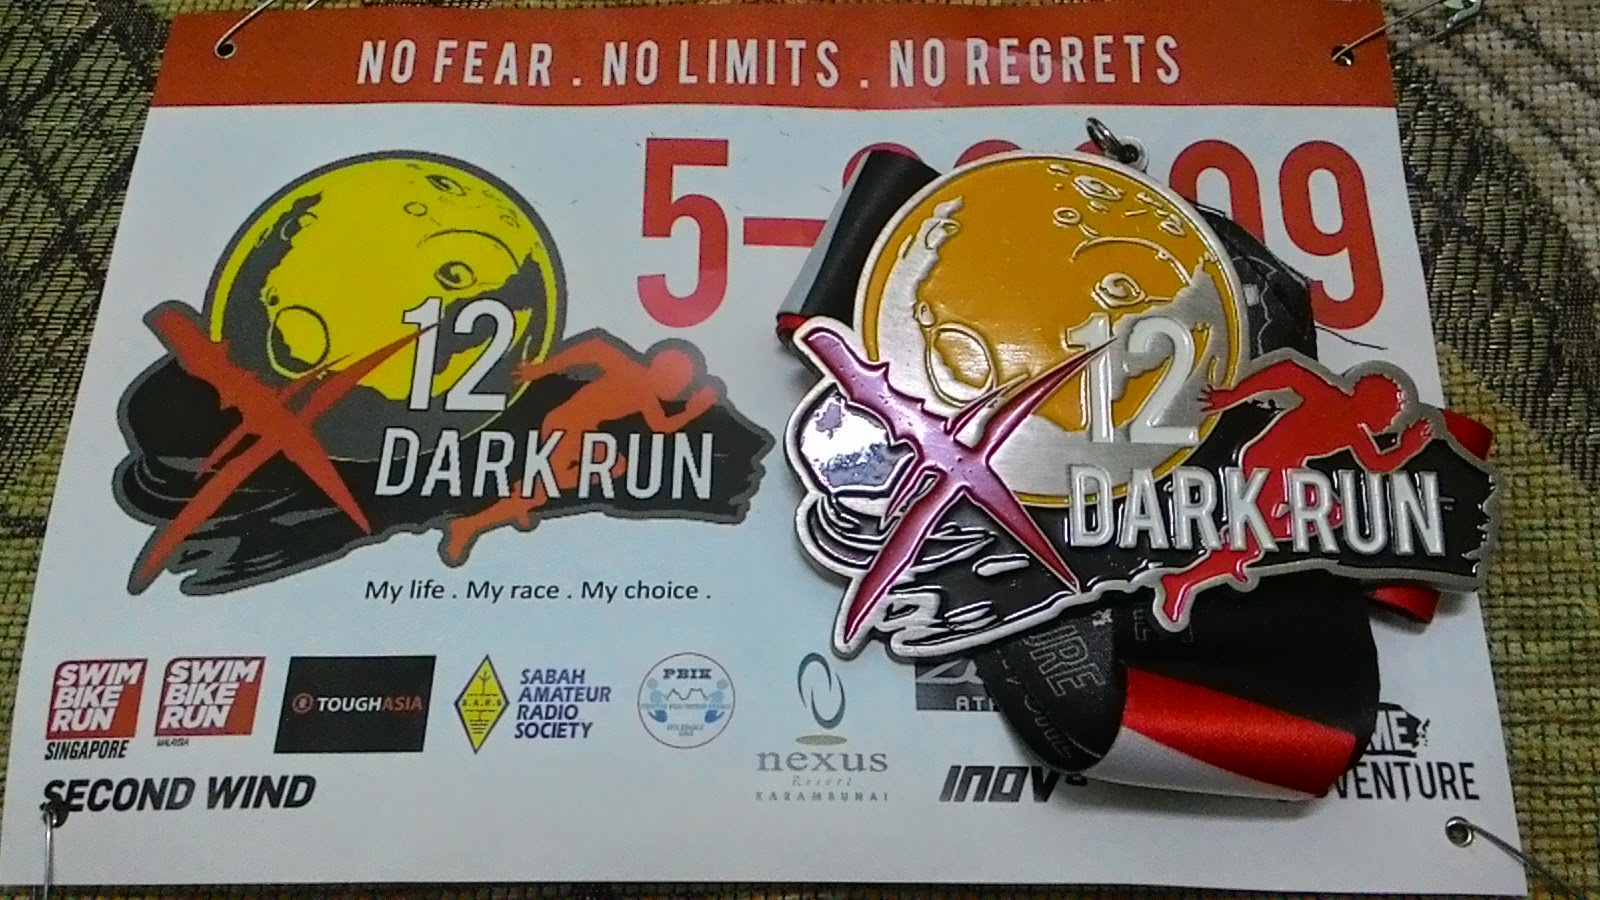 X12 Dark Run 2015 (10km)